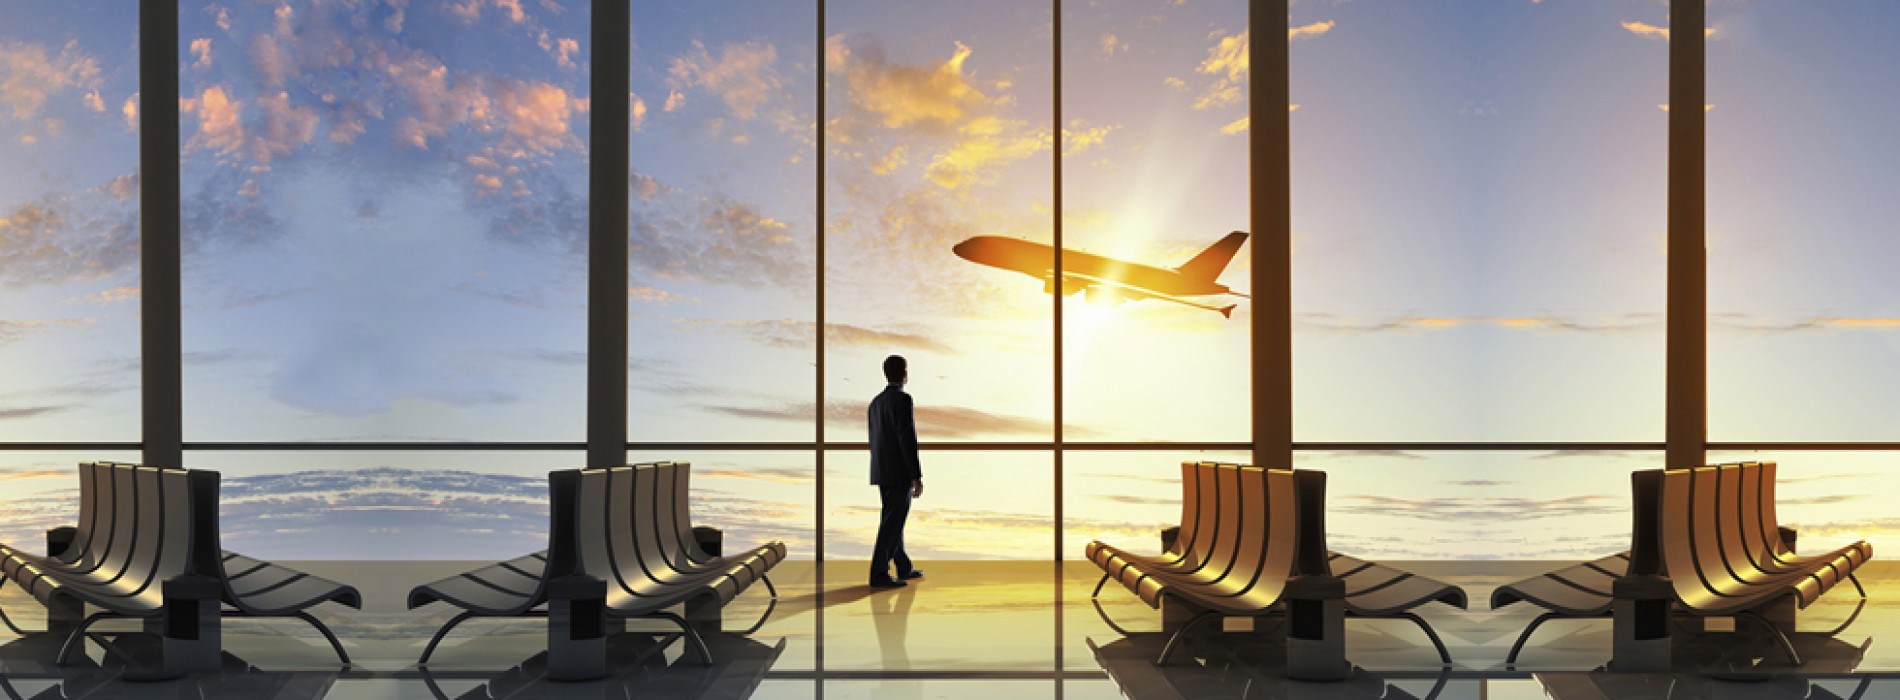 Business travel likely to triple to $93 billion by 2030 says Report